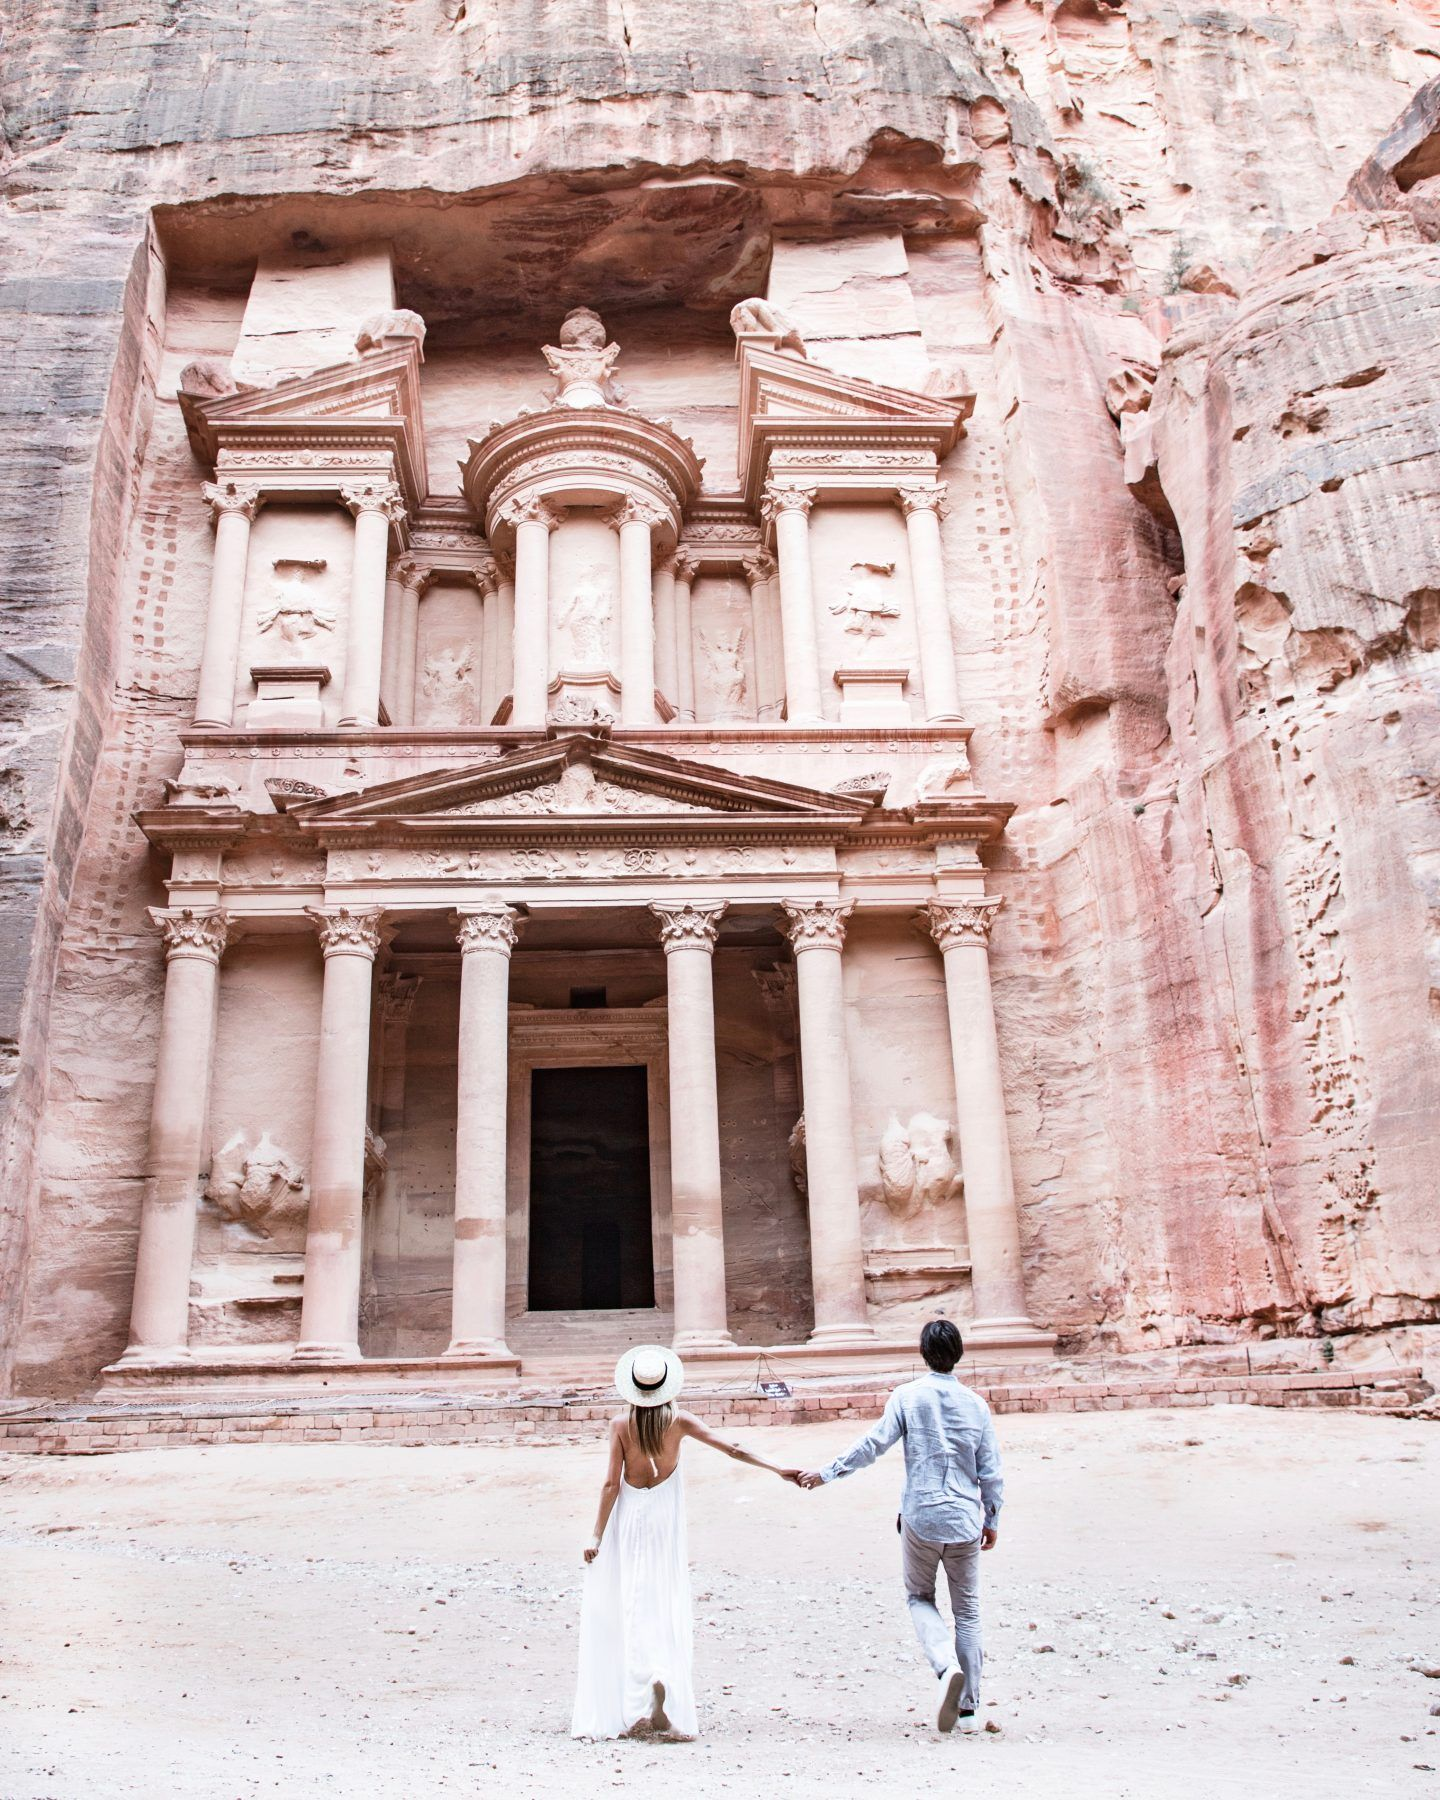 The Perfect Visit Of Petra With Images Petra Jordan City Of